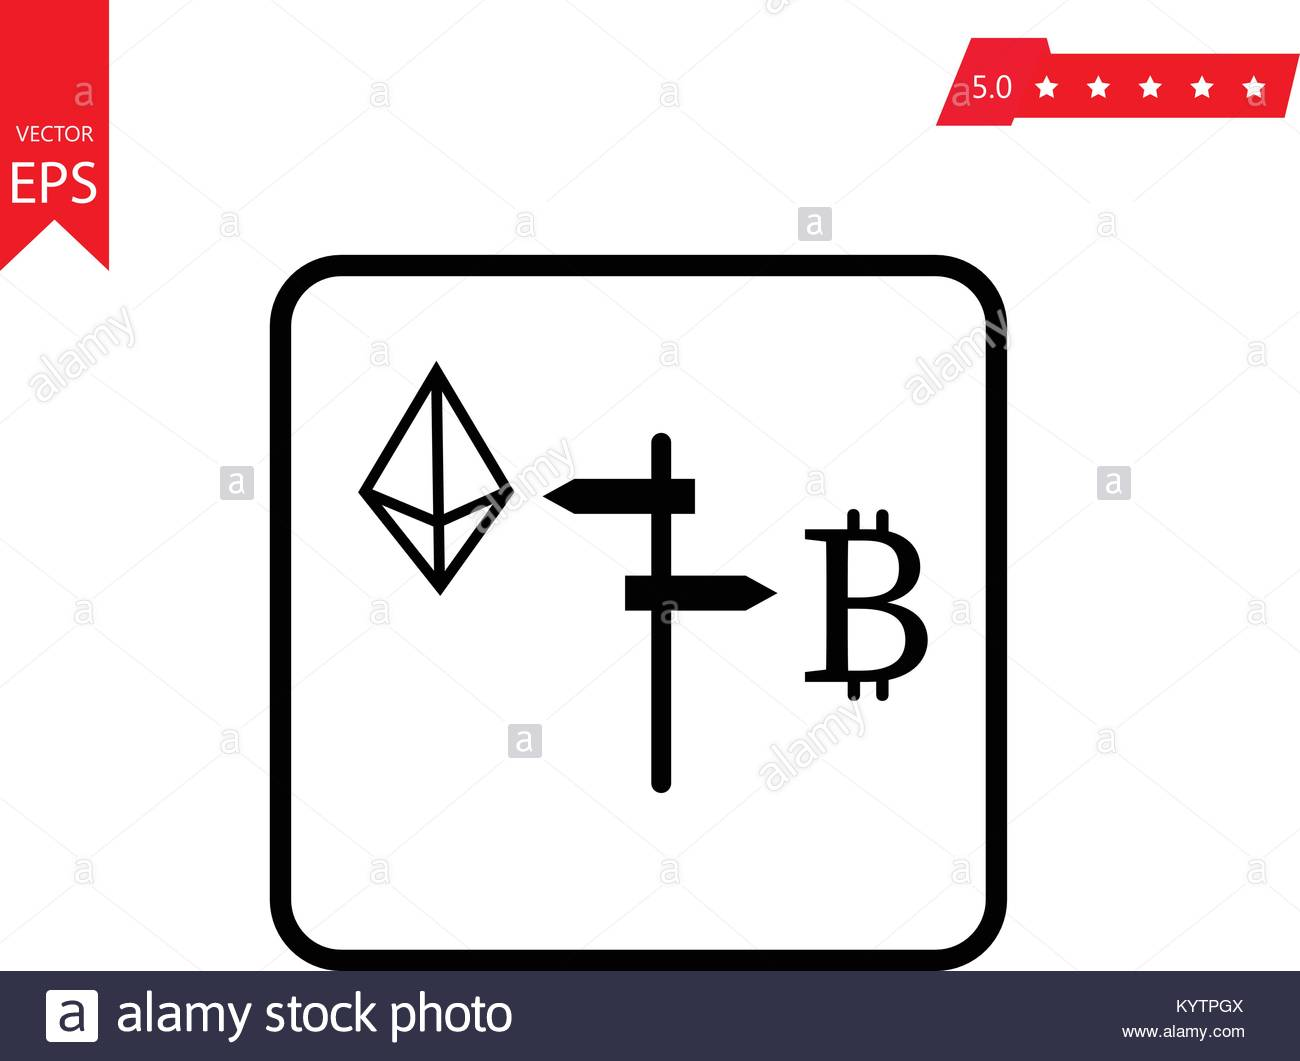 Ethereum Vs Bitcoin Icon For Internet Money Crypto Currency Symbol